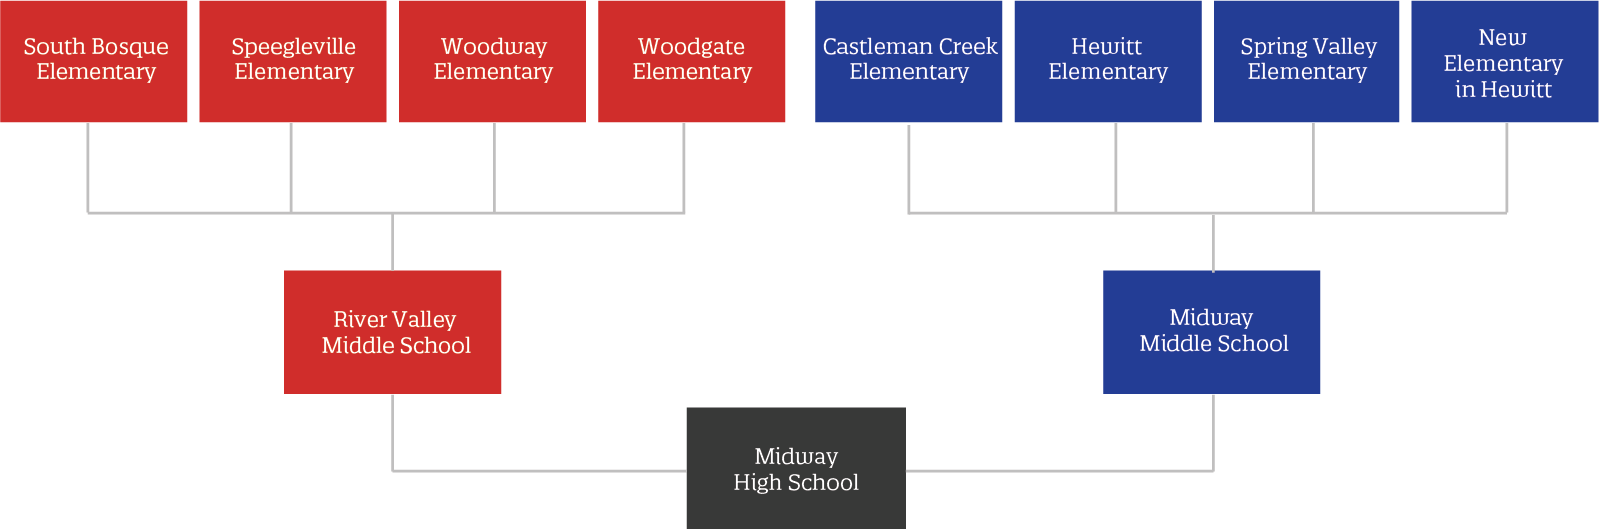 With the addition of a new school and re-purposing of two campuses, Midway ISD would operate two middle schools in the future. The new feeder pattern and attendance boundaries would not take effect until the construction at River Valley was complete. The earliest this could happen would be the 2022-2023 school year.